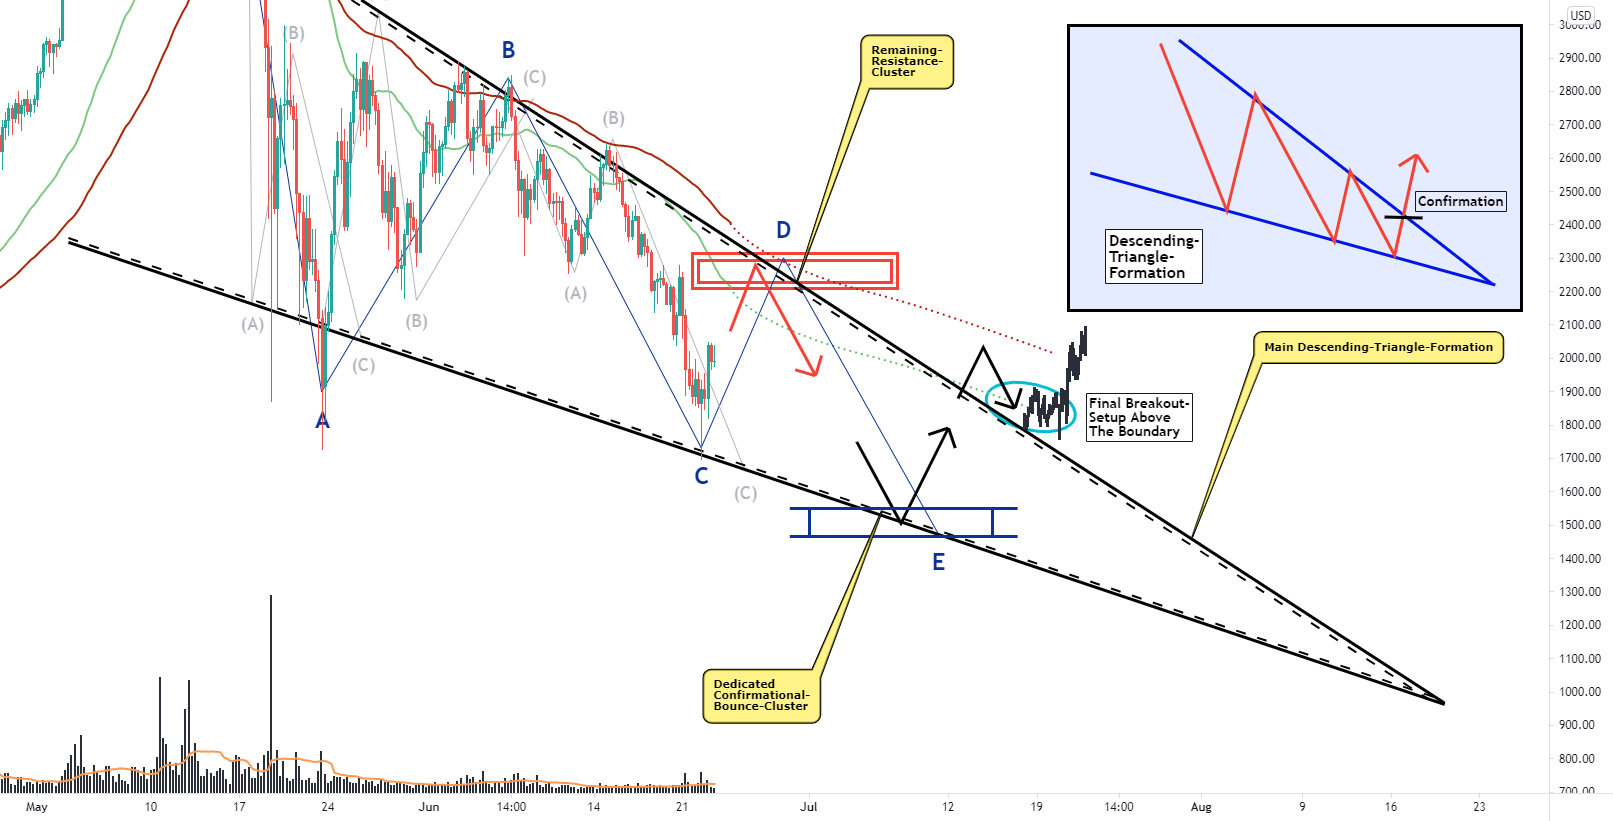 Ethereum, This Formation Can Be Source Of A Dedicated Reversal! for BYBIT:ETHUSD by VincePrince